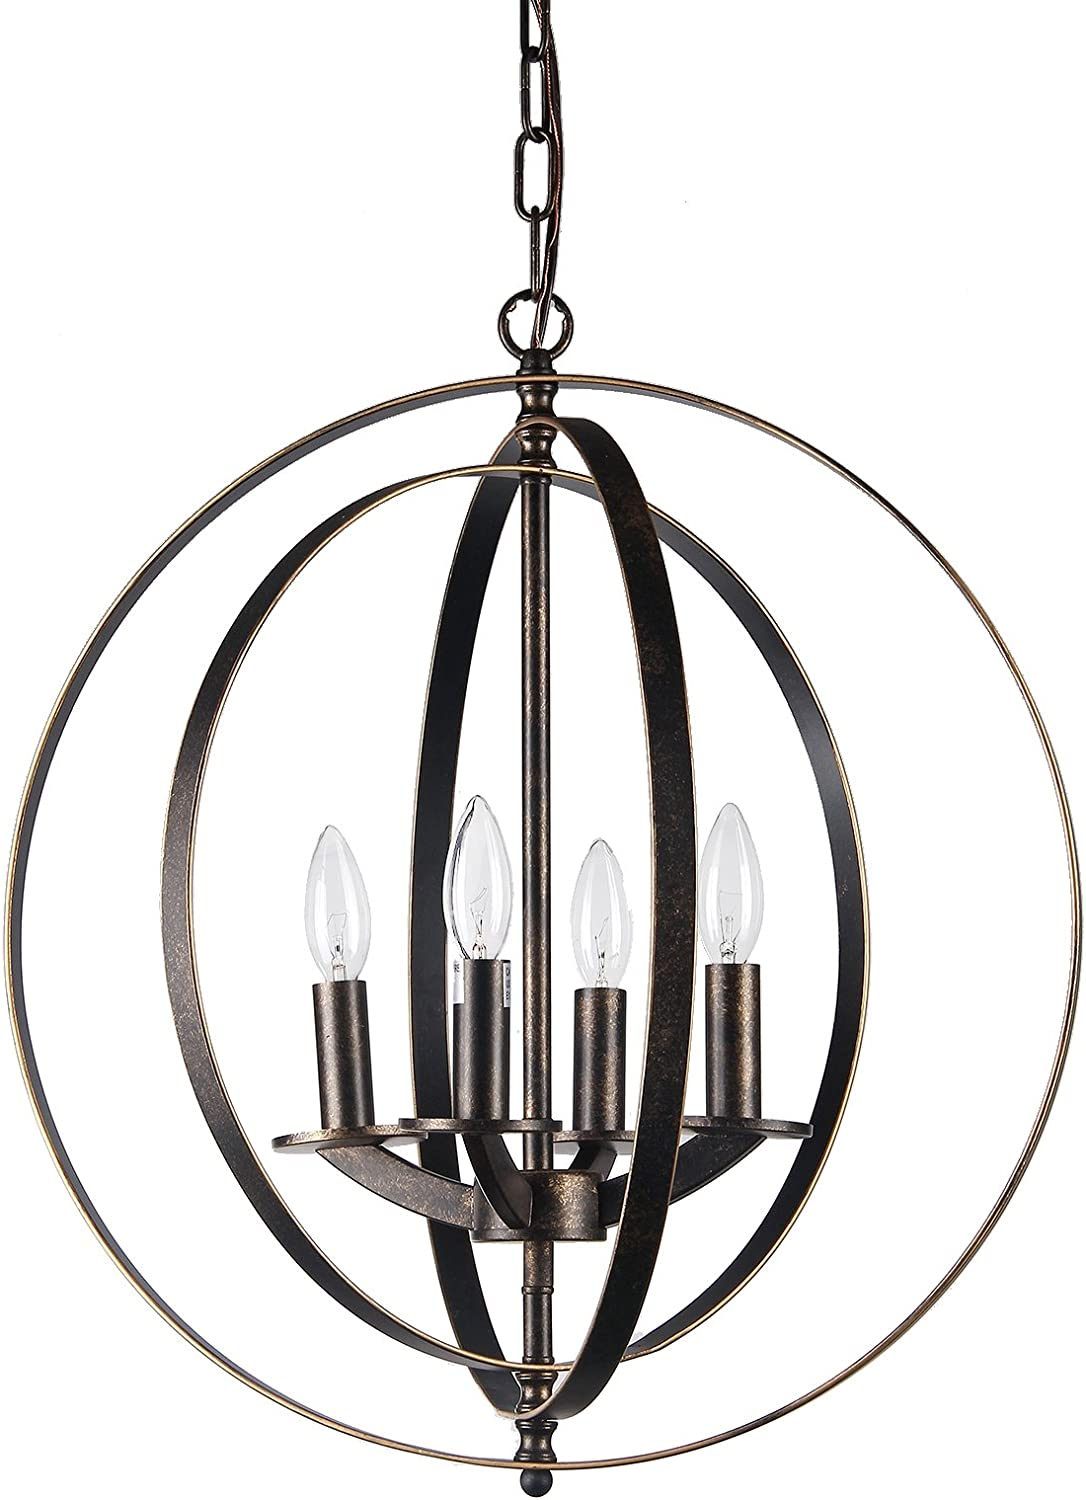 Edvivi 4-Light Antique Bronze Iron Rings Globe Sphere Orb Cage Chandelier Ceiling Fixture Modern Farmhouse Lighting